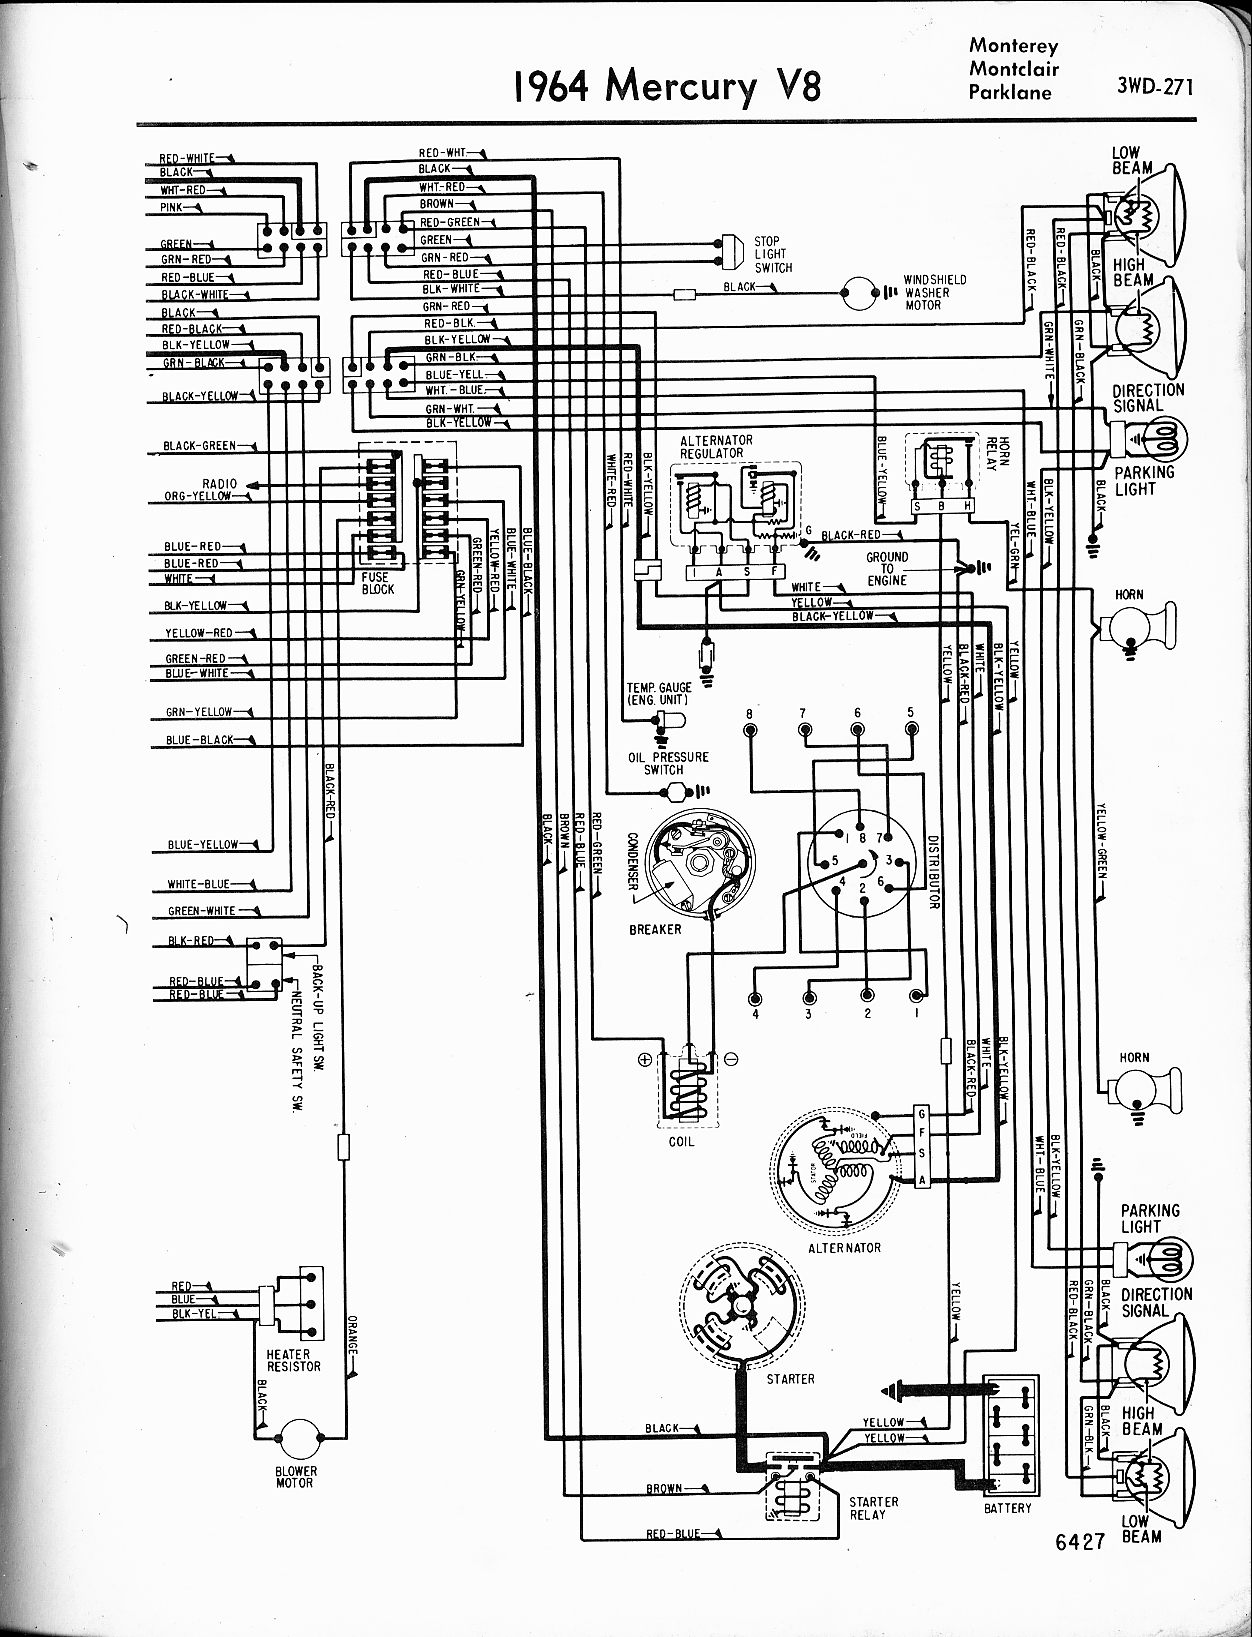 MWire5765 271 mercury wiring diagrams the old car manual project 1955 plymouth wiring diagram at nearapp.co